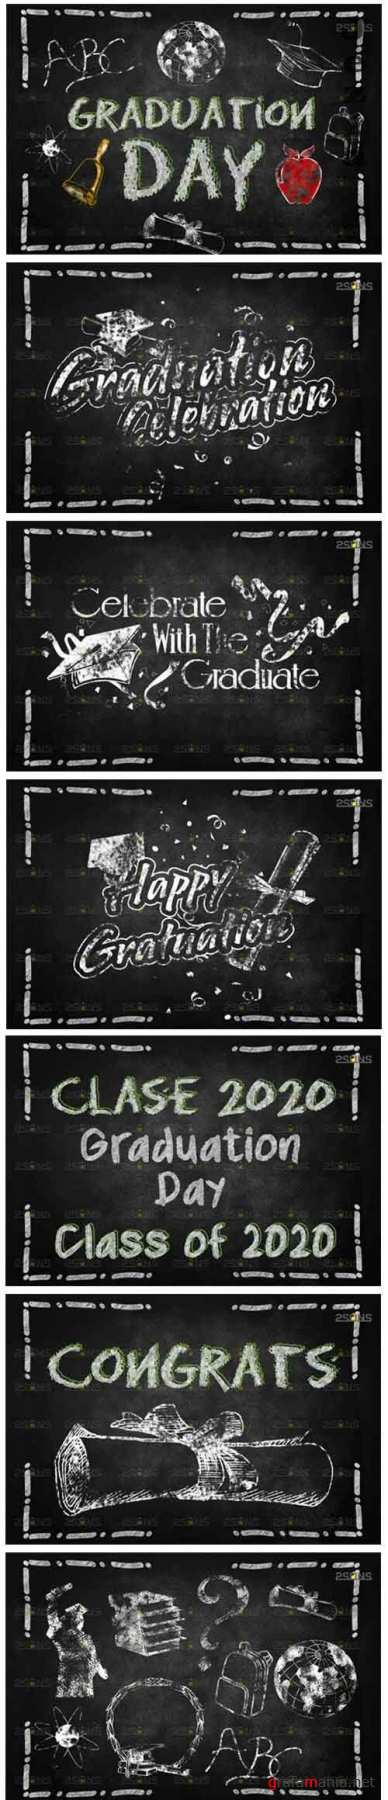 Overlay Graduation Sidewalk Chalk Art - 617282